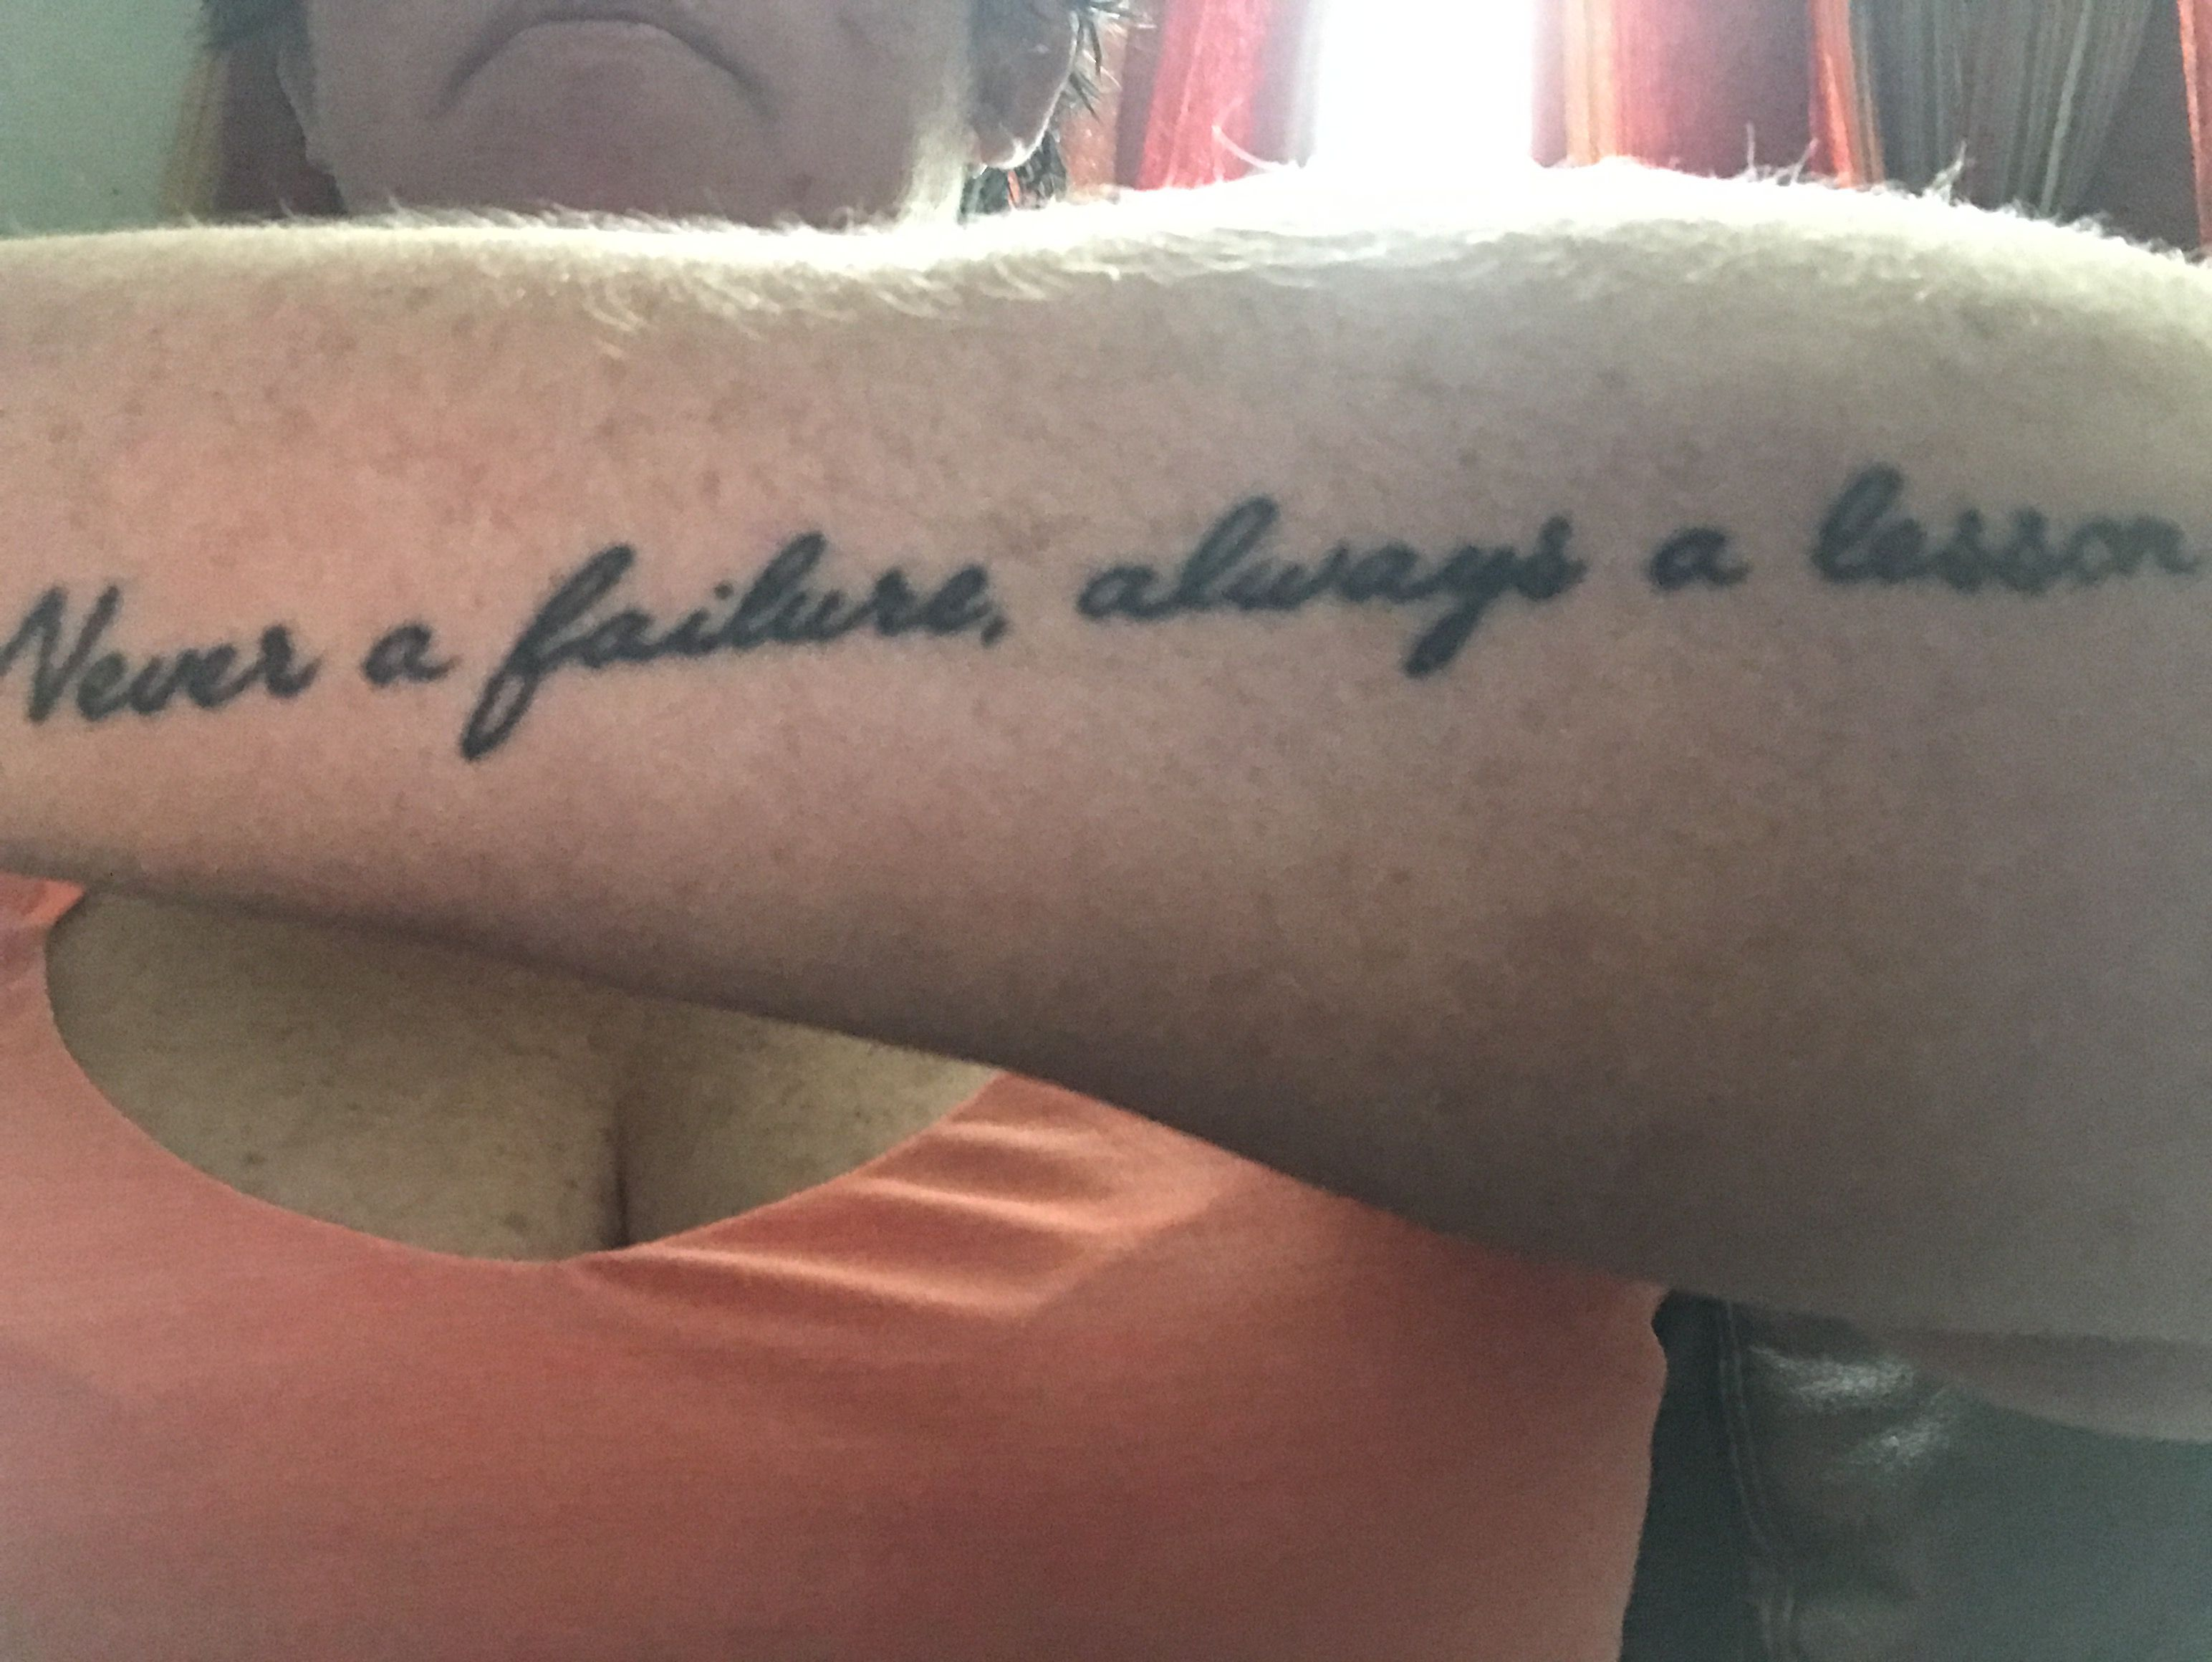 Never a failure always a lesson | Tattoo quotes, Tattoos